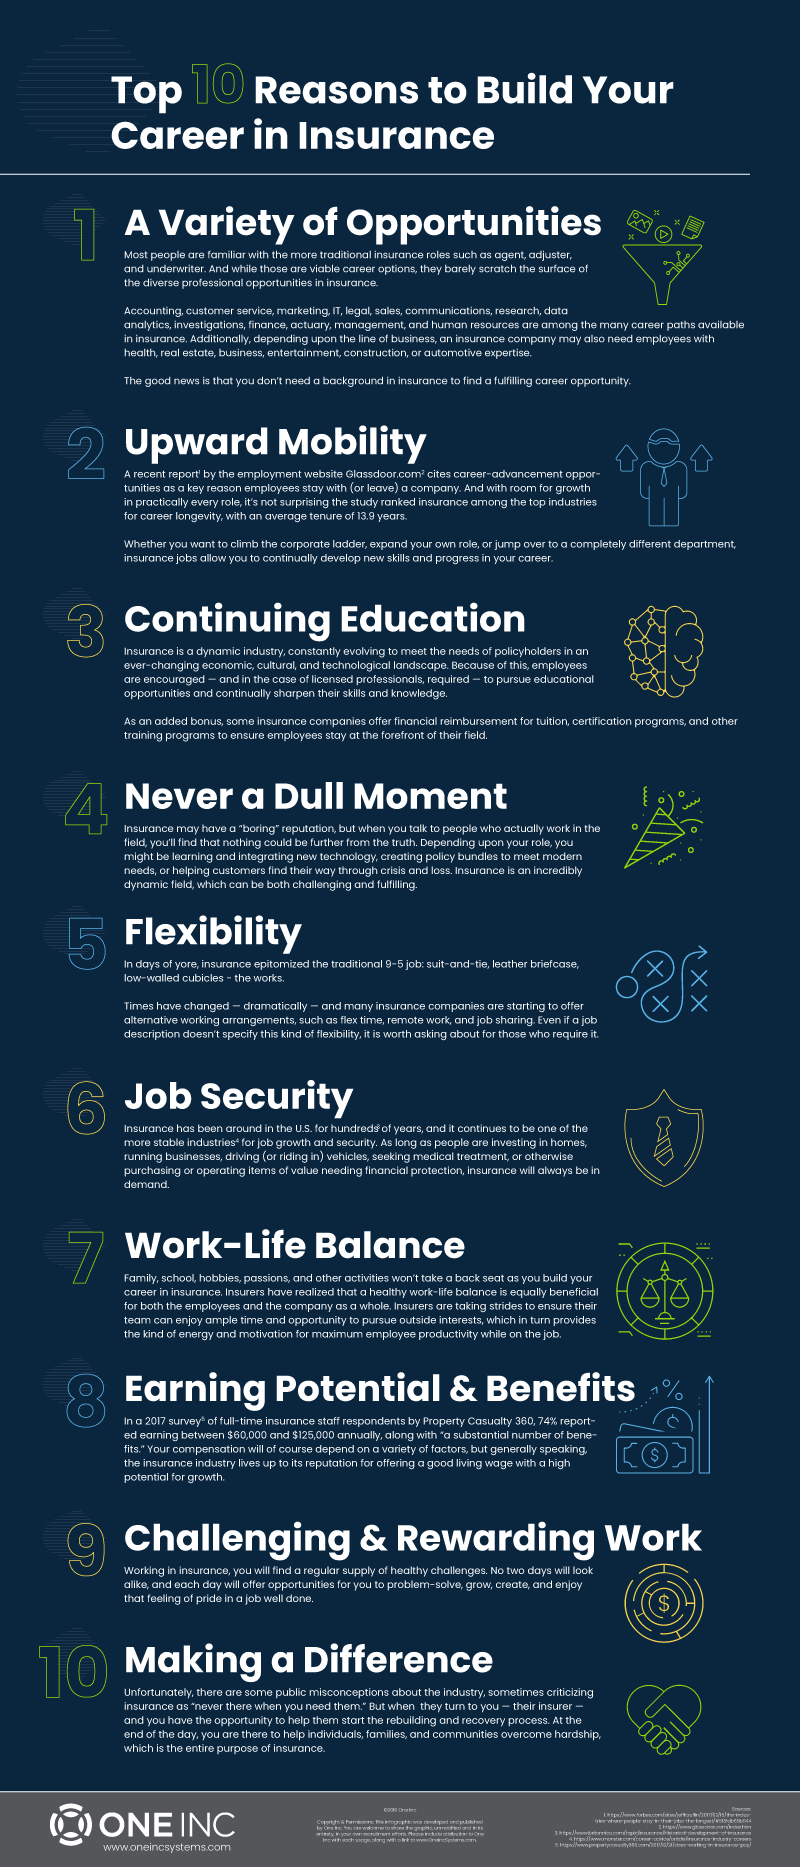 Top-10-Reasons-Work-in-Insurance